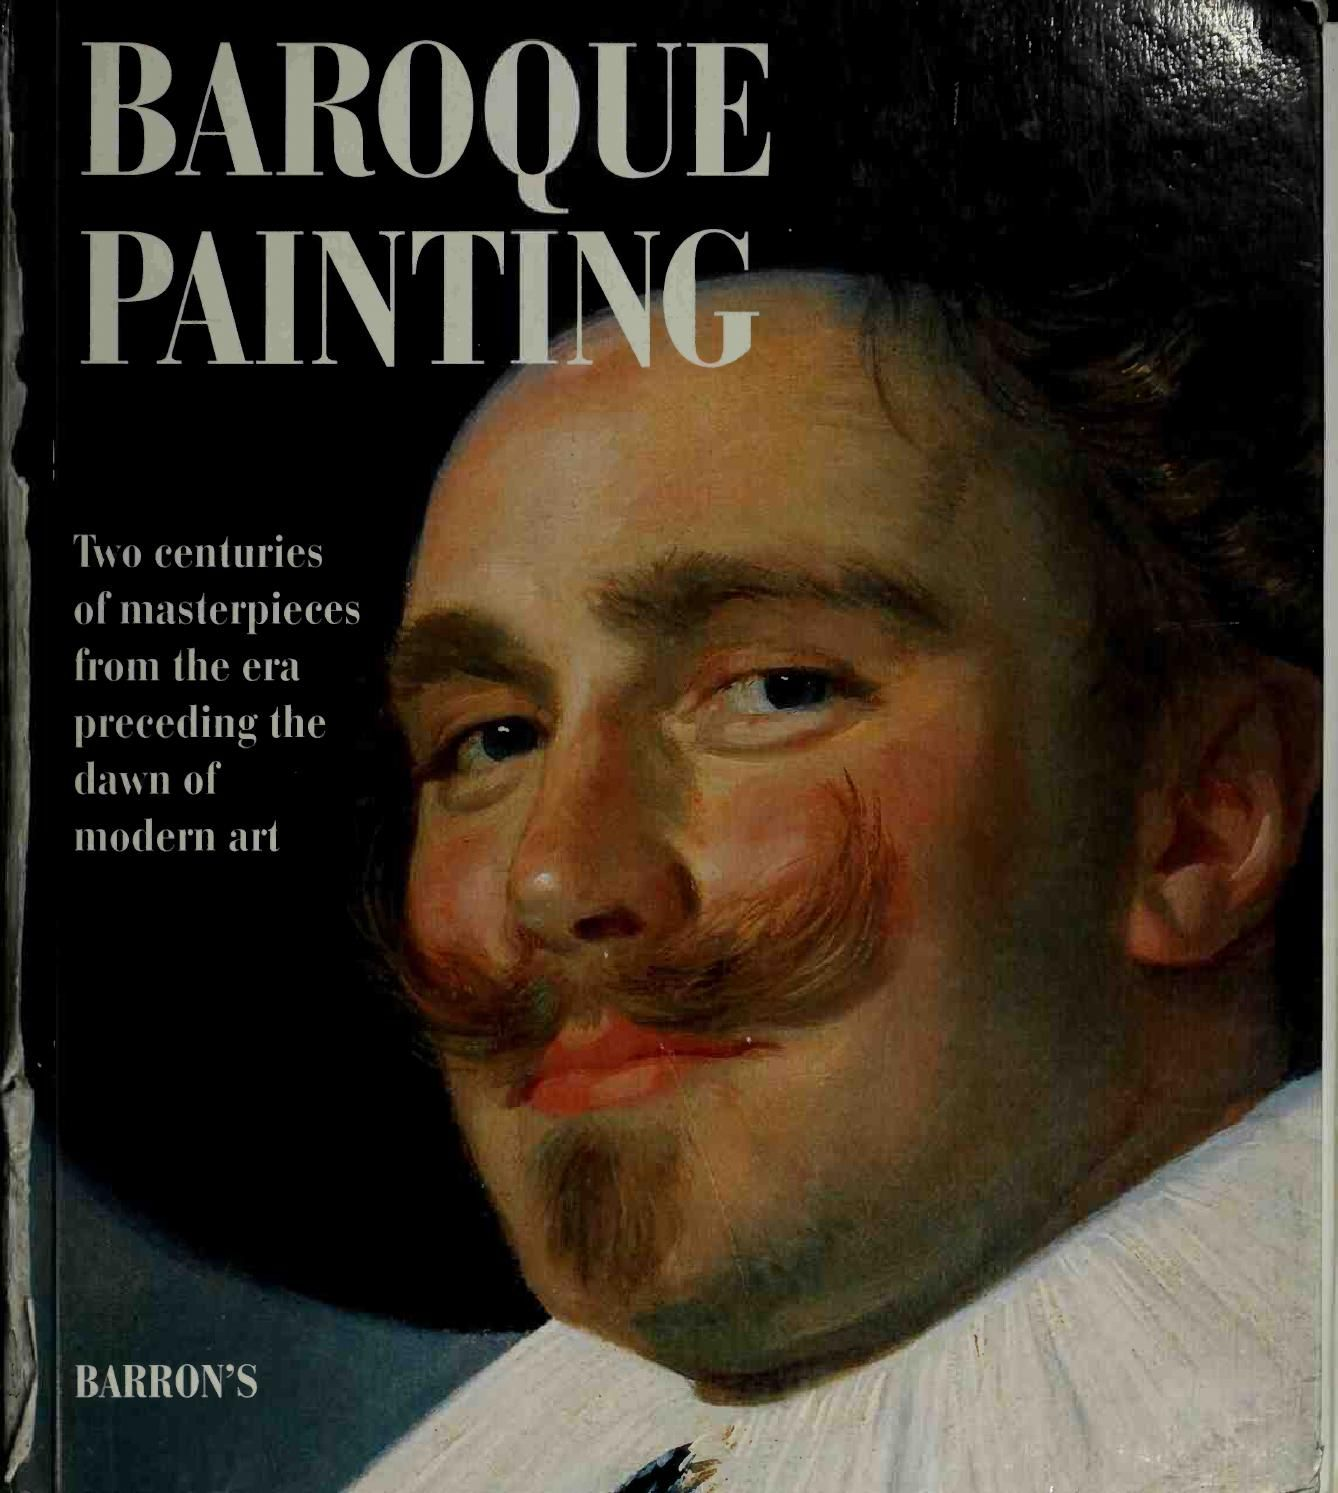 Baroque painting two centuries of masterpieces from the era preceding the dawn of modern art (art eb